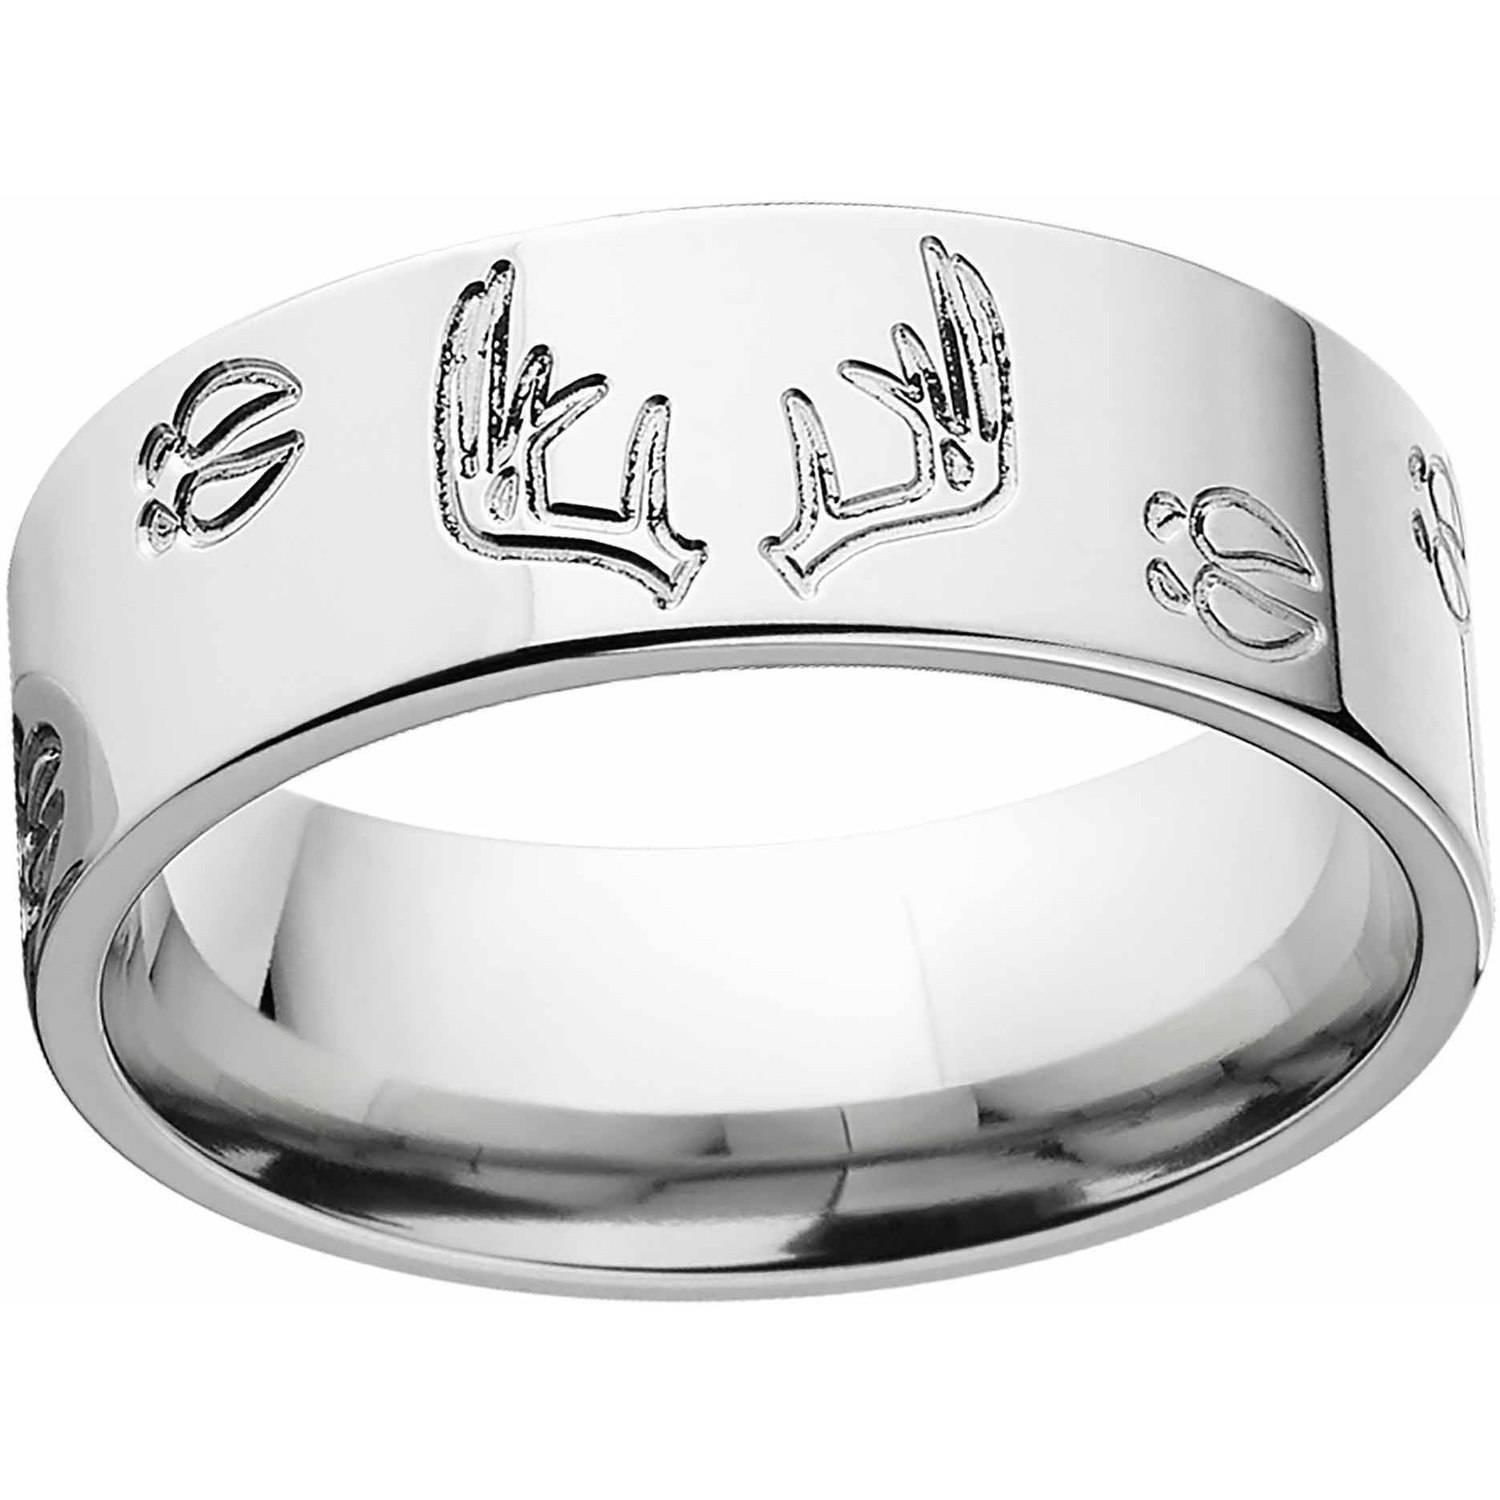 Mens Deer Track and Rack Durable 8mm Stainless Steel Wedding Band